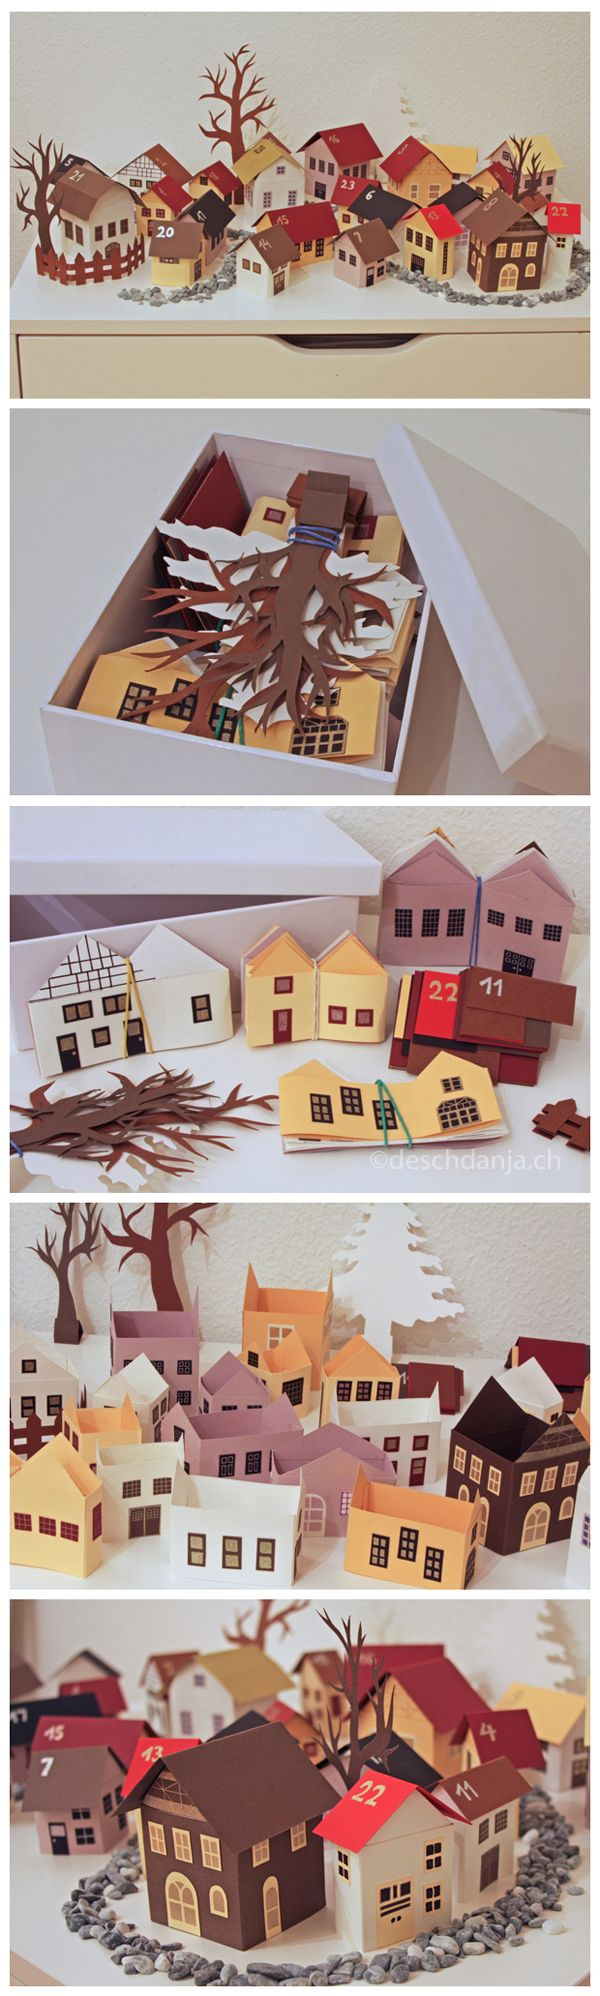 My advent calendar consists of 24 little houses made out of paper. They can be easily folded flat for storage. www.deschdanja.ch